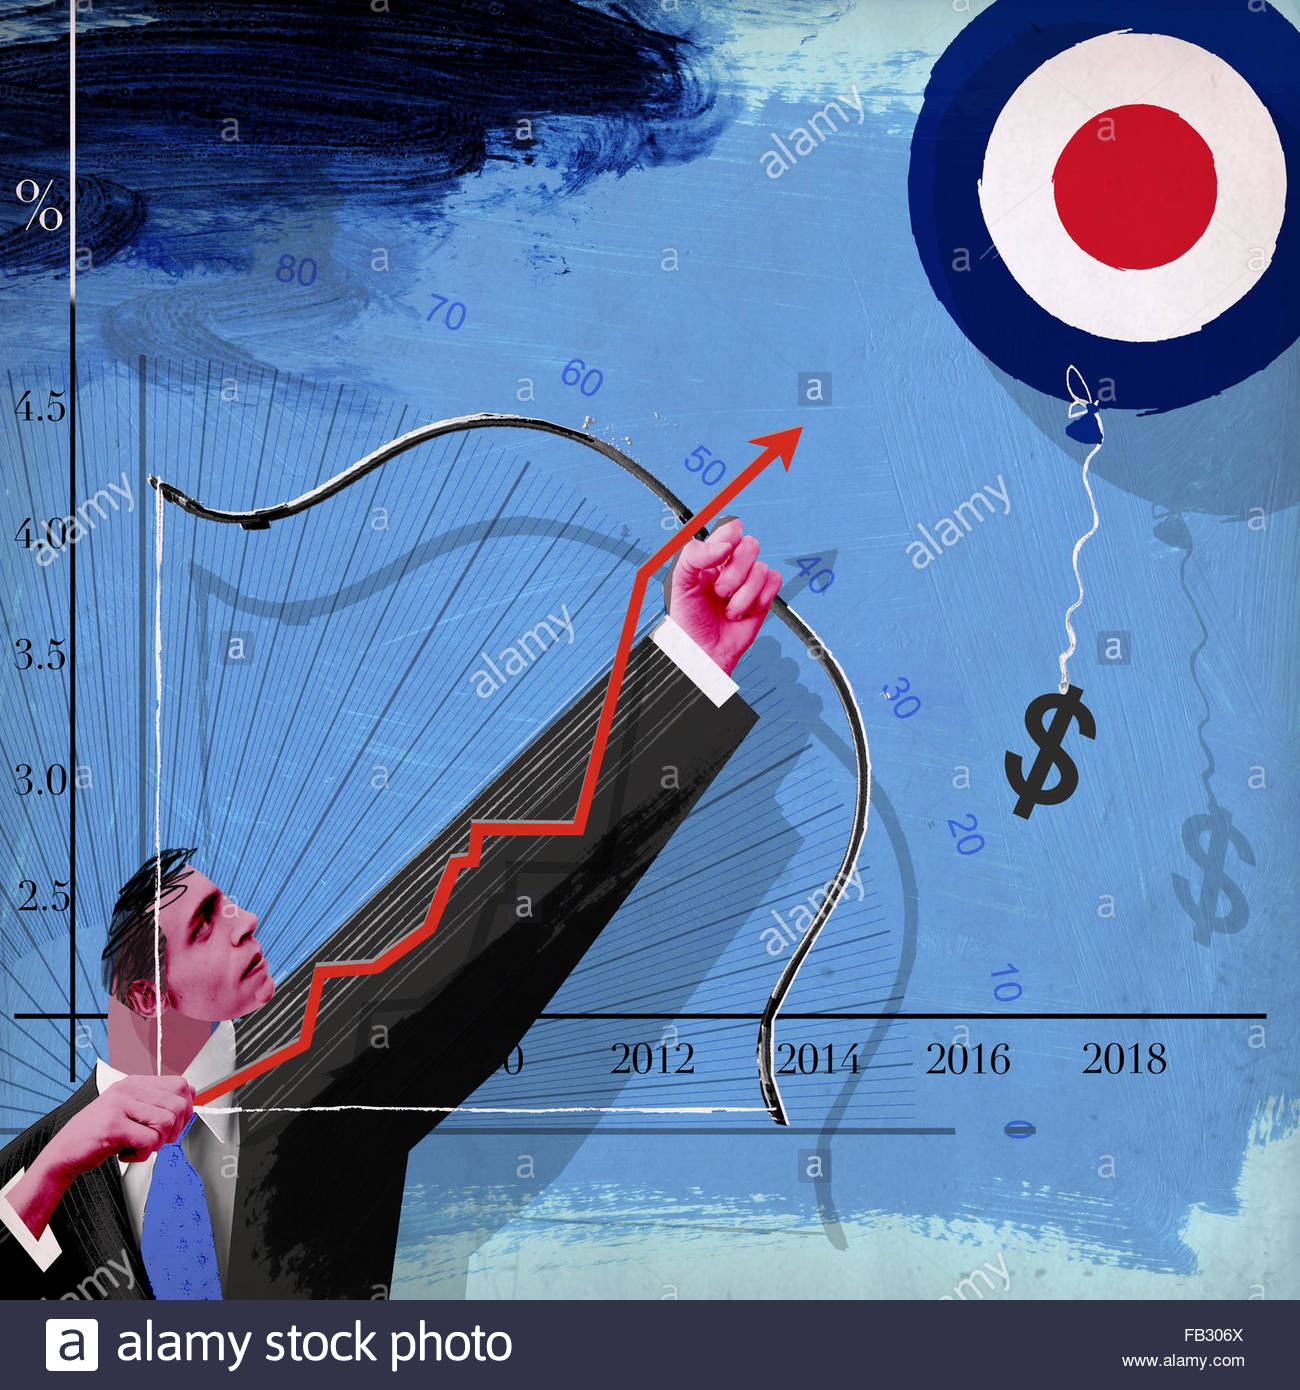 Businessman aiming bow and arrow at dollar sign balloon target on increasing line graph - Stock Image